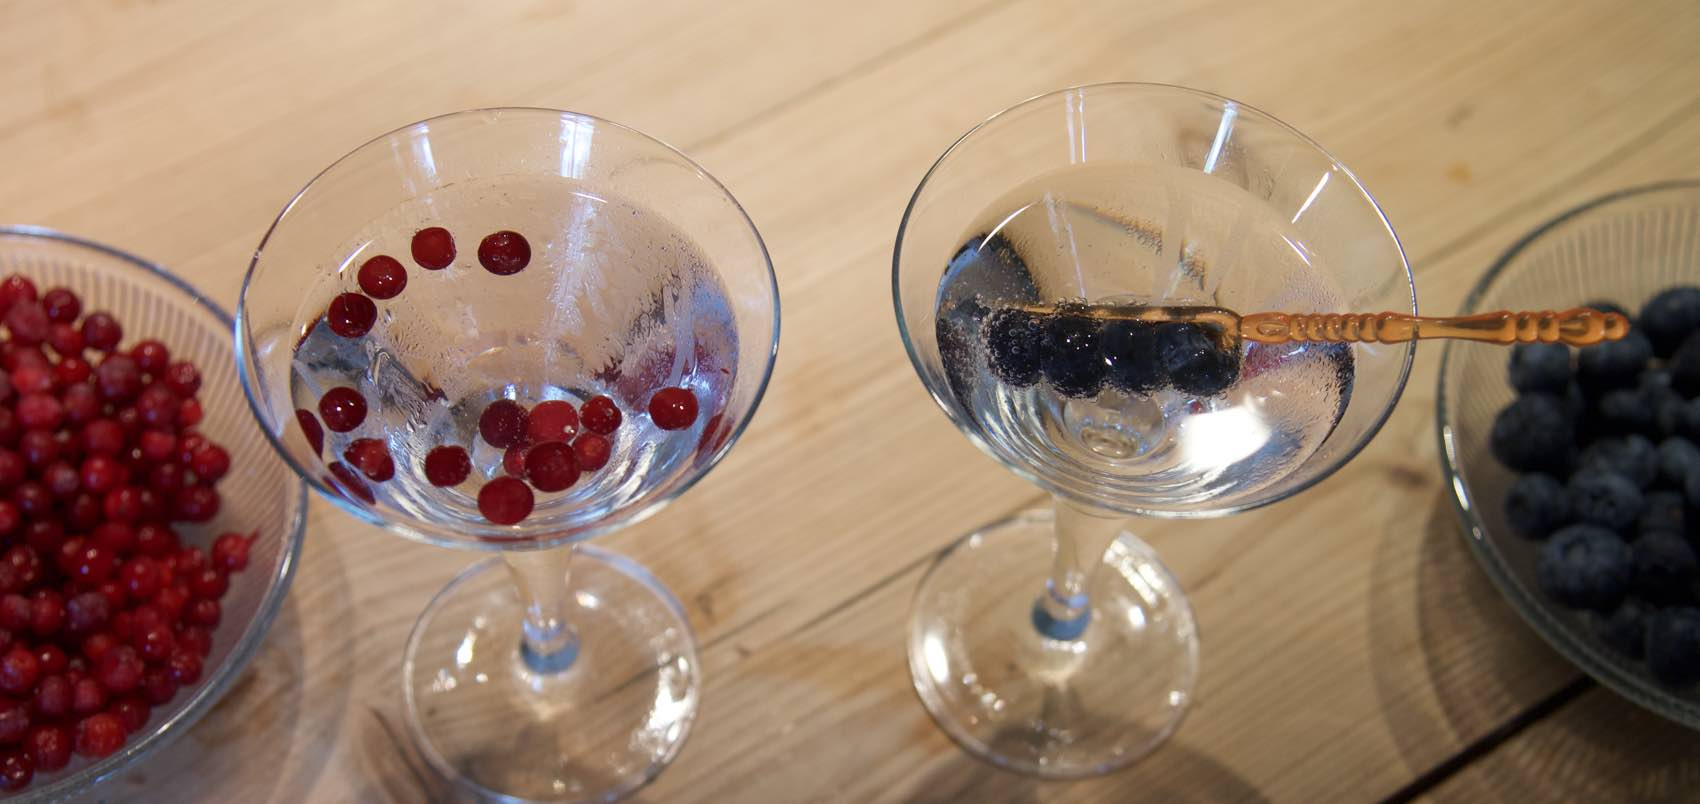 Arctic Martini - as served in the arctic area of Norway.